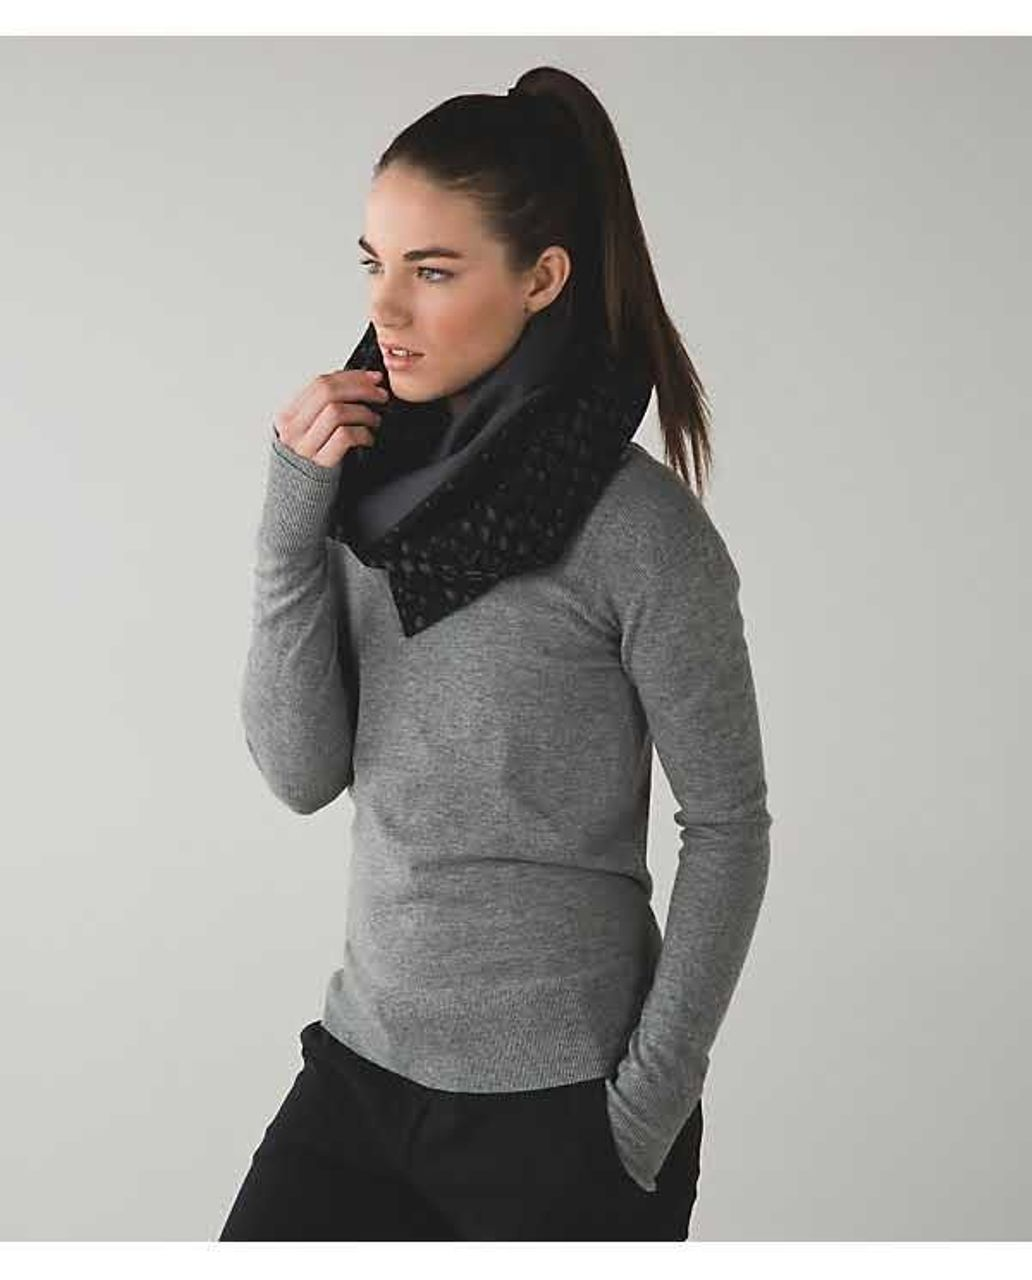 Lululemon Vinyasa Scarf *Fleece - Simply Lace Play Dark Slate Black / Dark Slate